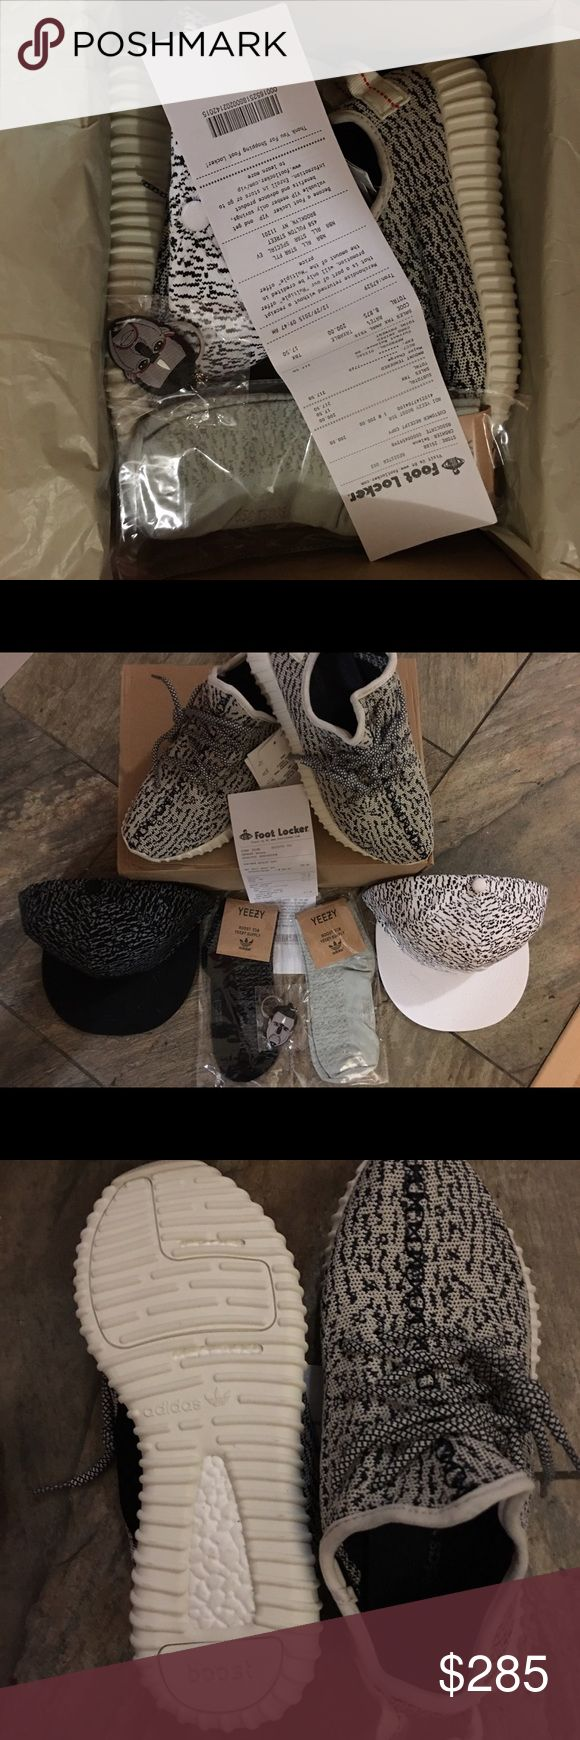 Bundle turtle dove Yeezy boost 350!! Size 7-8 Brand new never worn!! Everything is original. This is a bundle so a hat, a pair of socks, a keychain and the receipt will be given. Price is not firm so feel free to make offers. Feel free to message me if you have any questions. Adidas Shoes Athletic Shoes